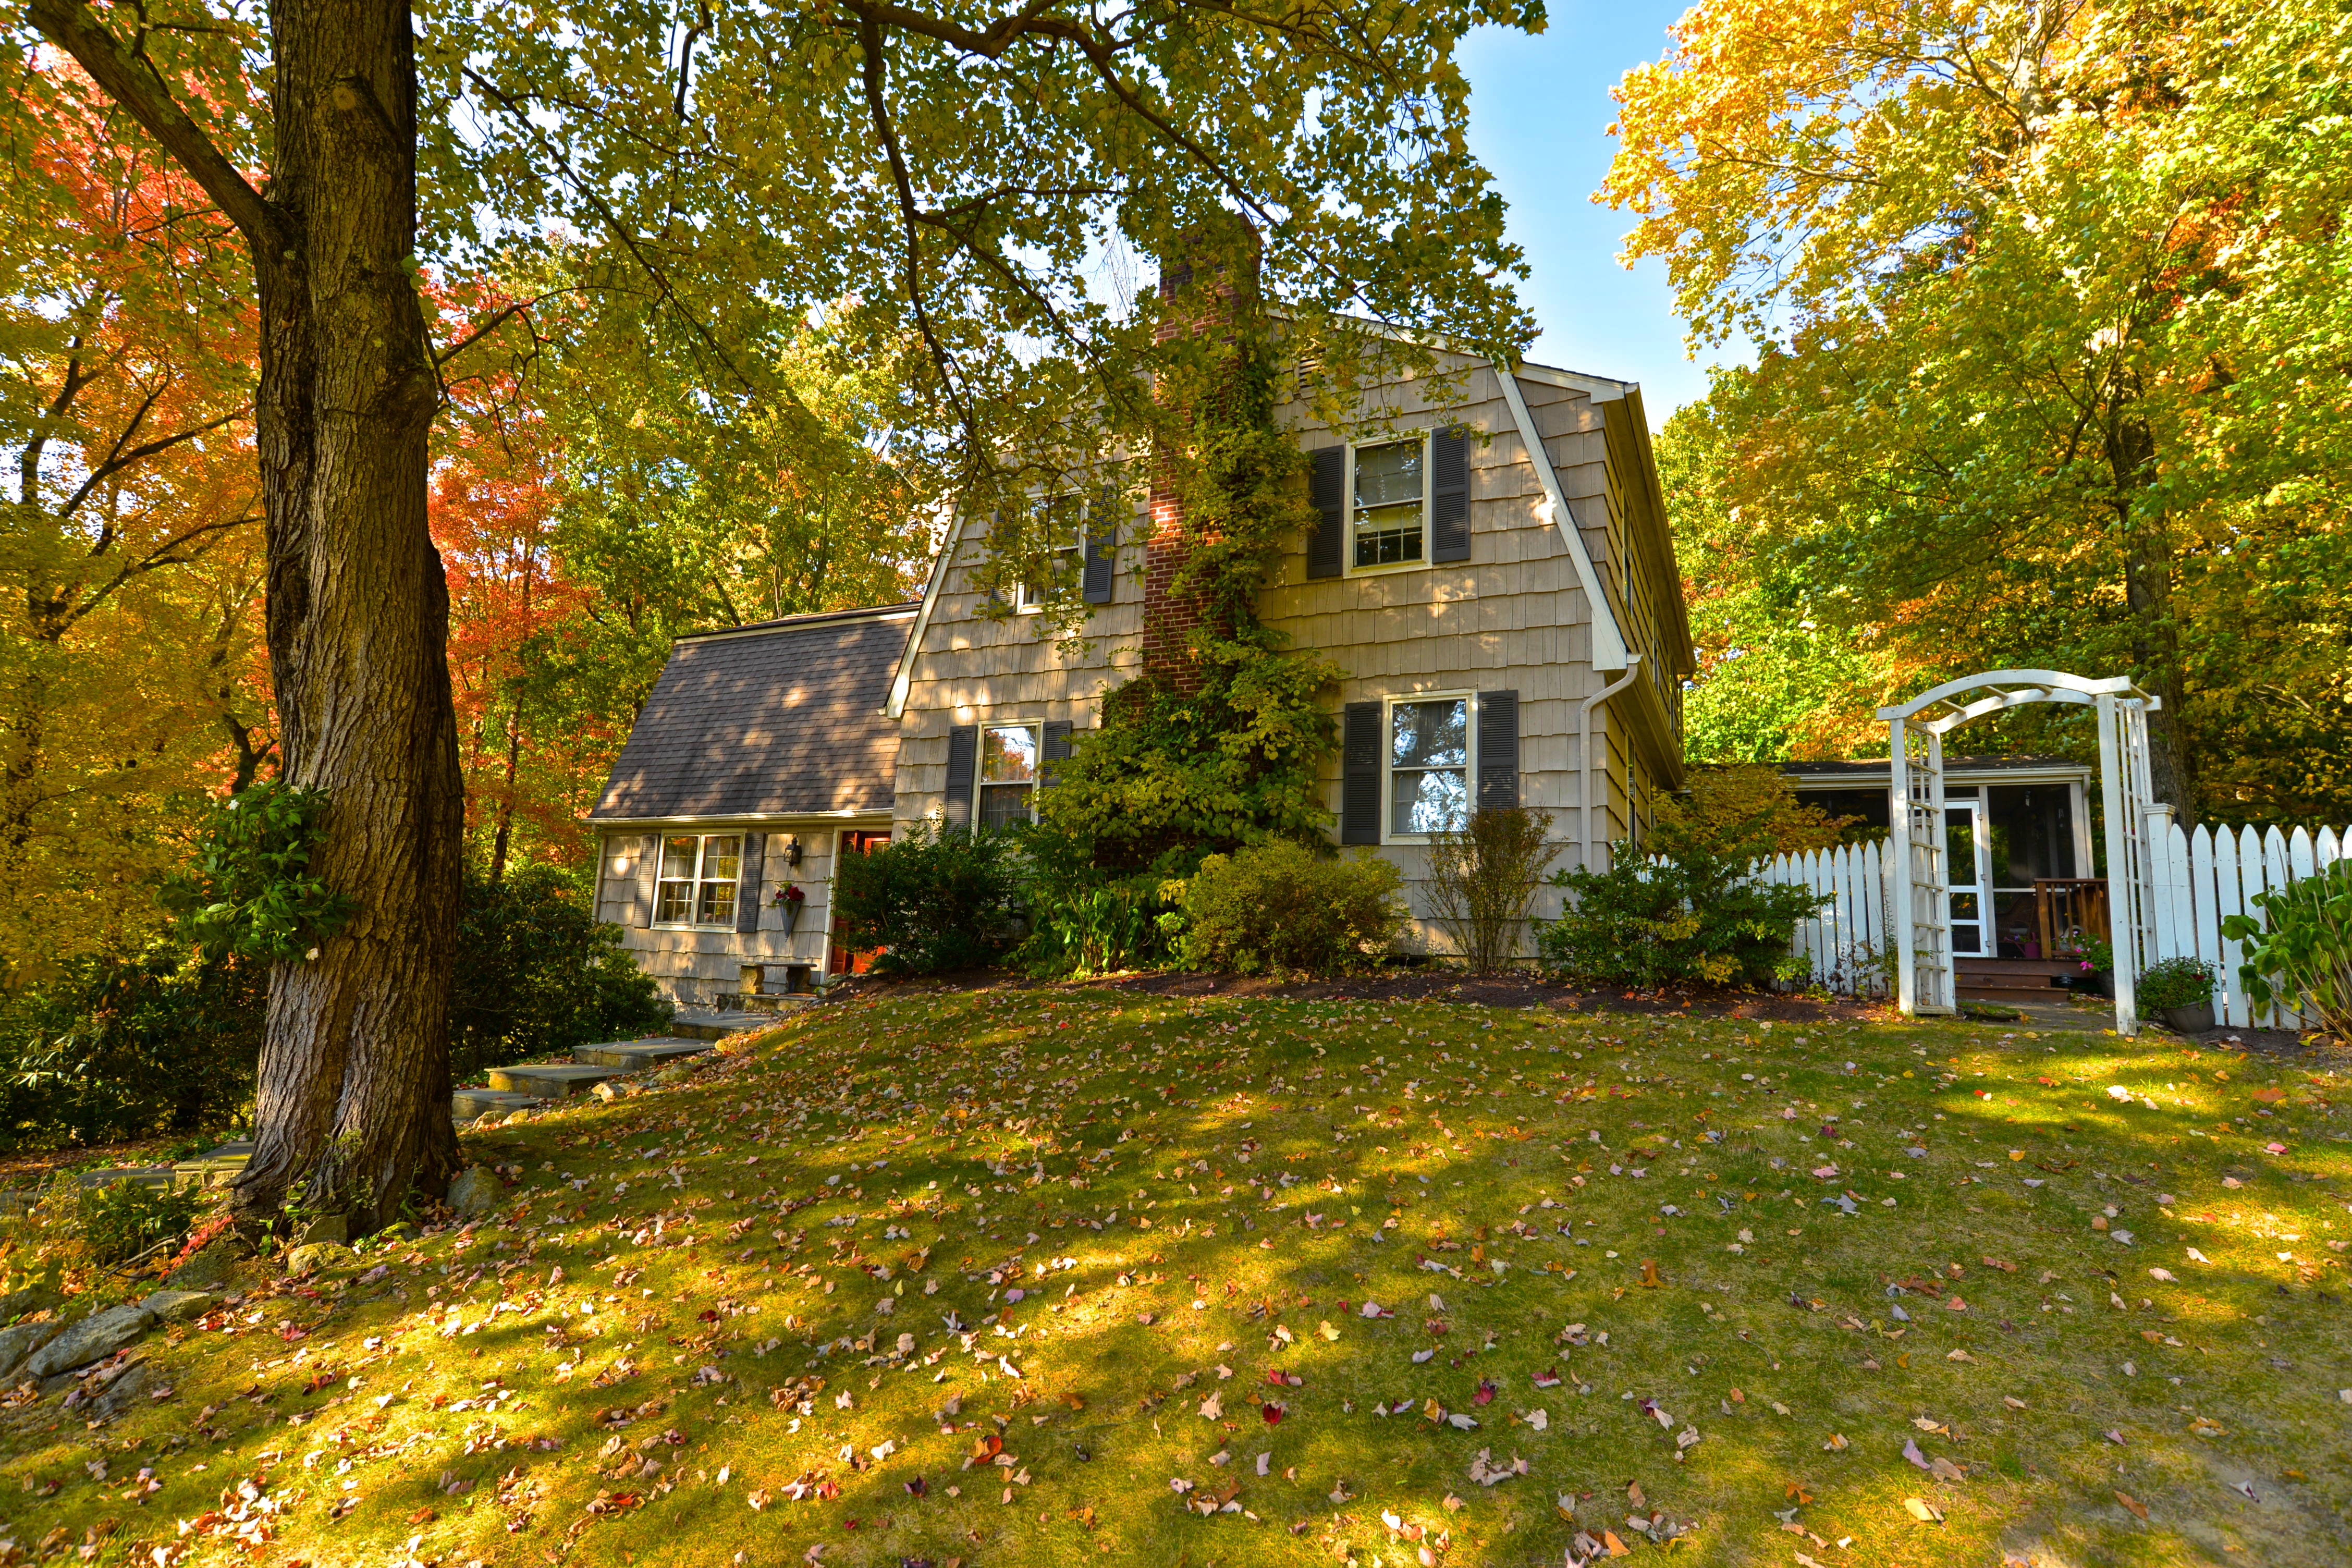 Single Family Home for Sale at Character And Charm 5 Beechwood Circle Brookfield, Connecticut 06804 United States